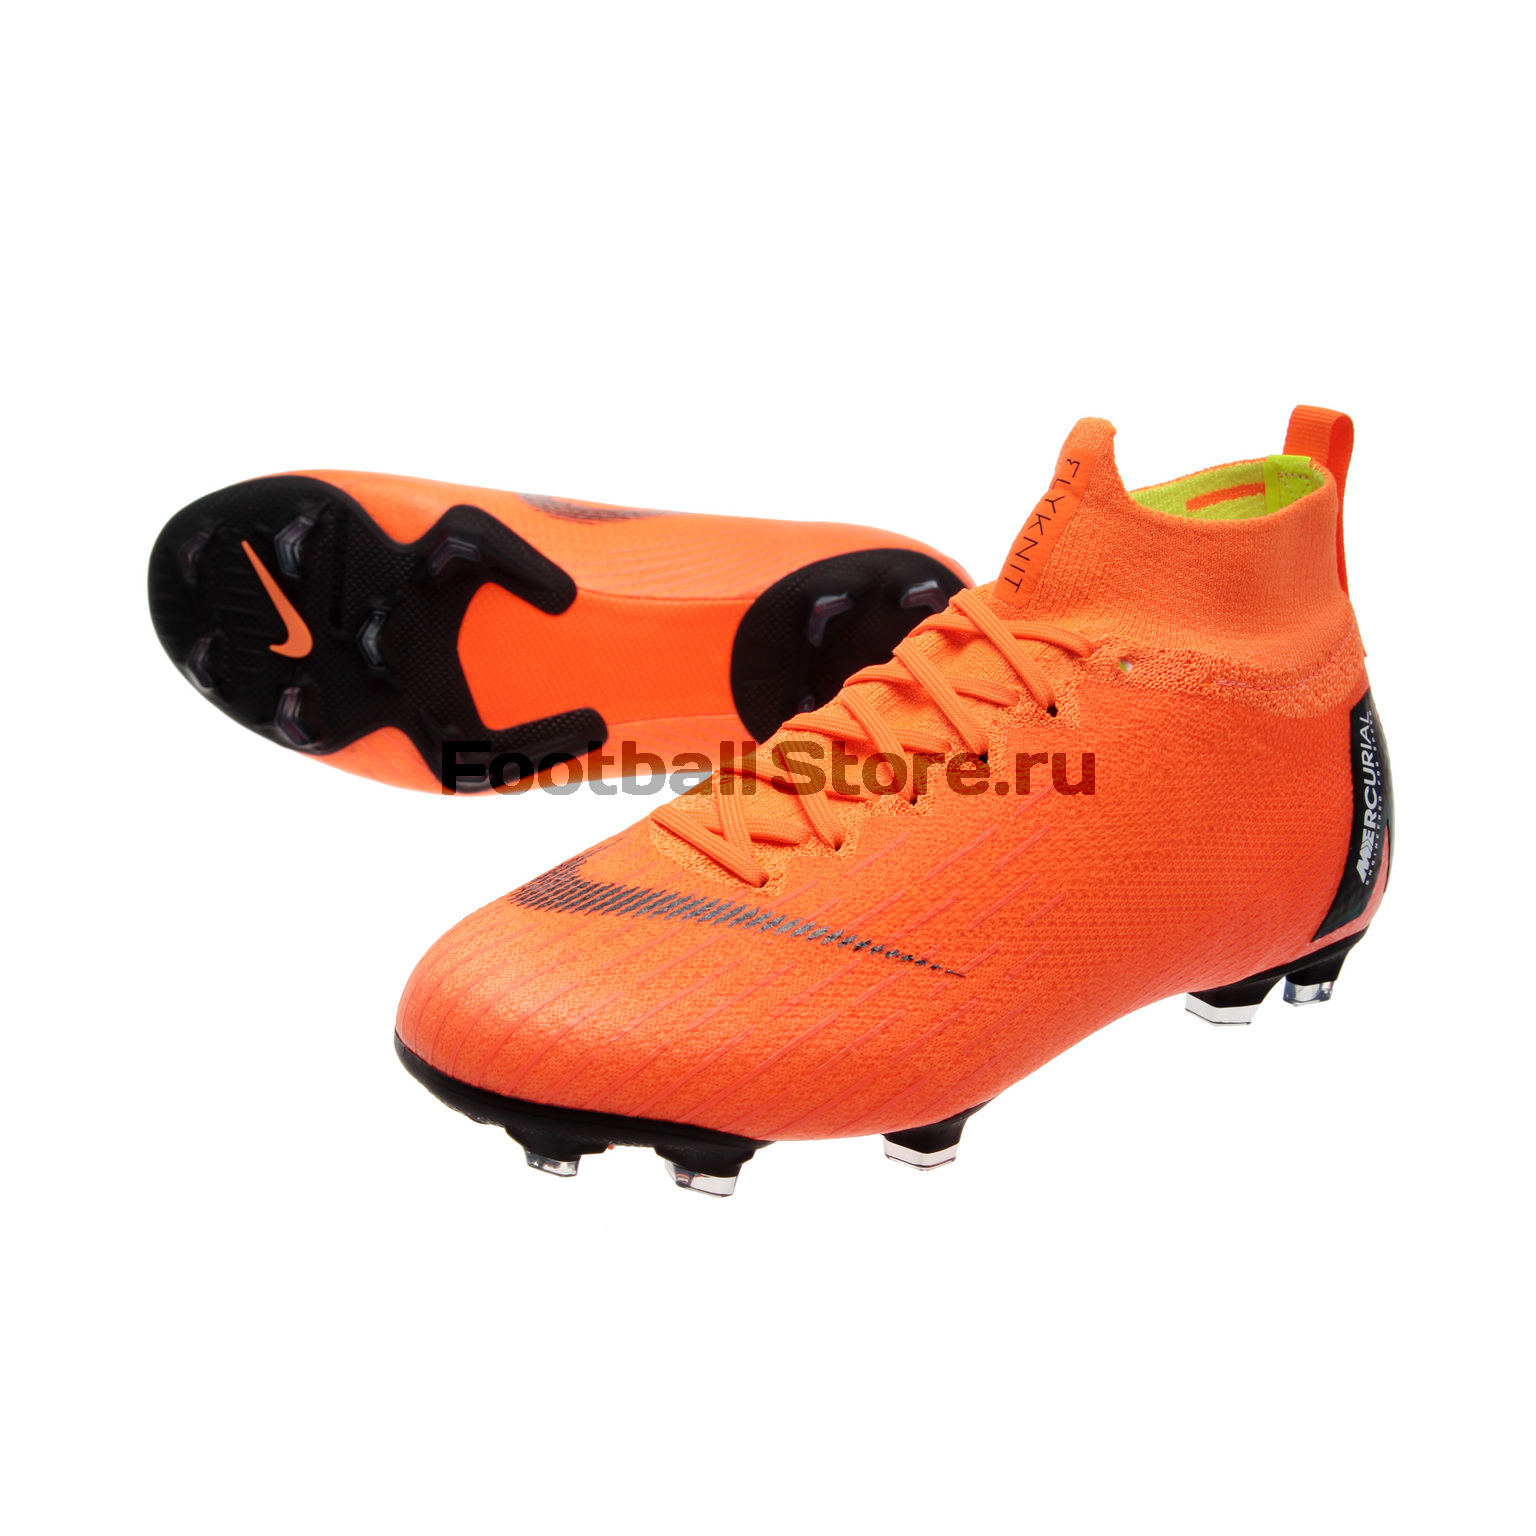 Бутсы Nike JR Superfly 6 Elite FG AH7340-810 детские бутсы nike бутсы nike jr phantom 3 elite df fg ah7292 081